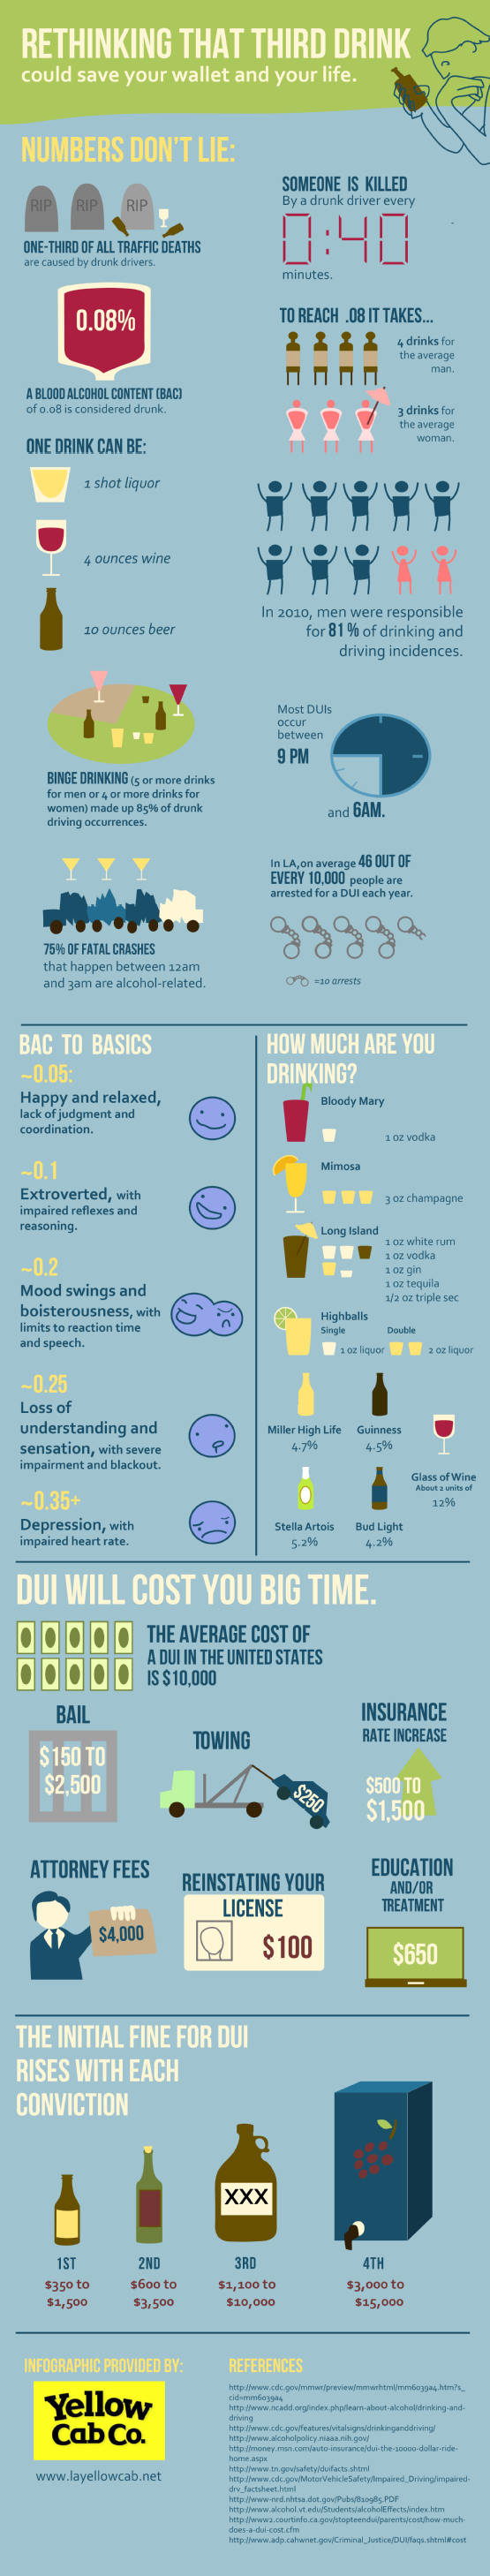 Rethink That Third Drink Infographic Rethink That Third Drink (Infographic)